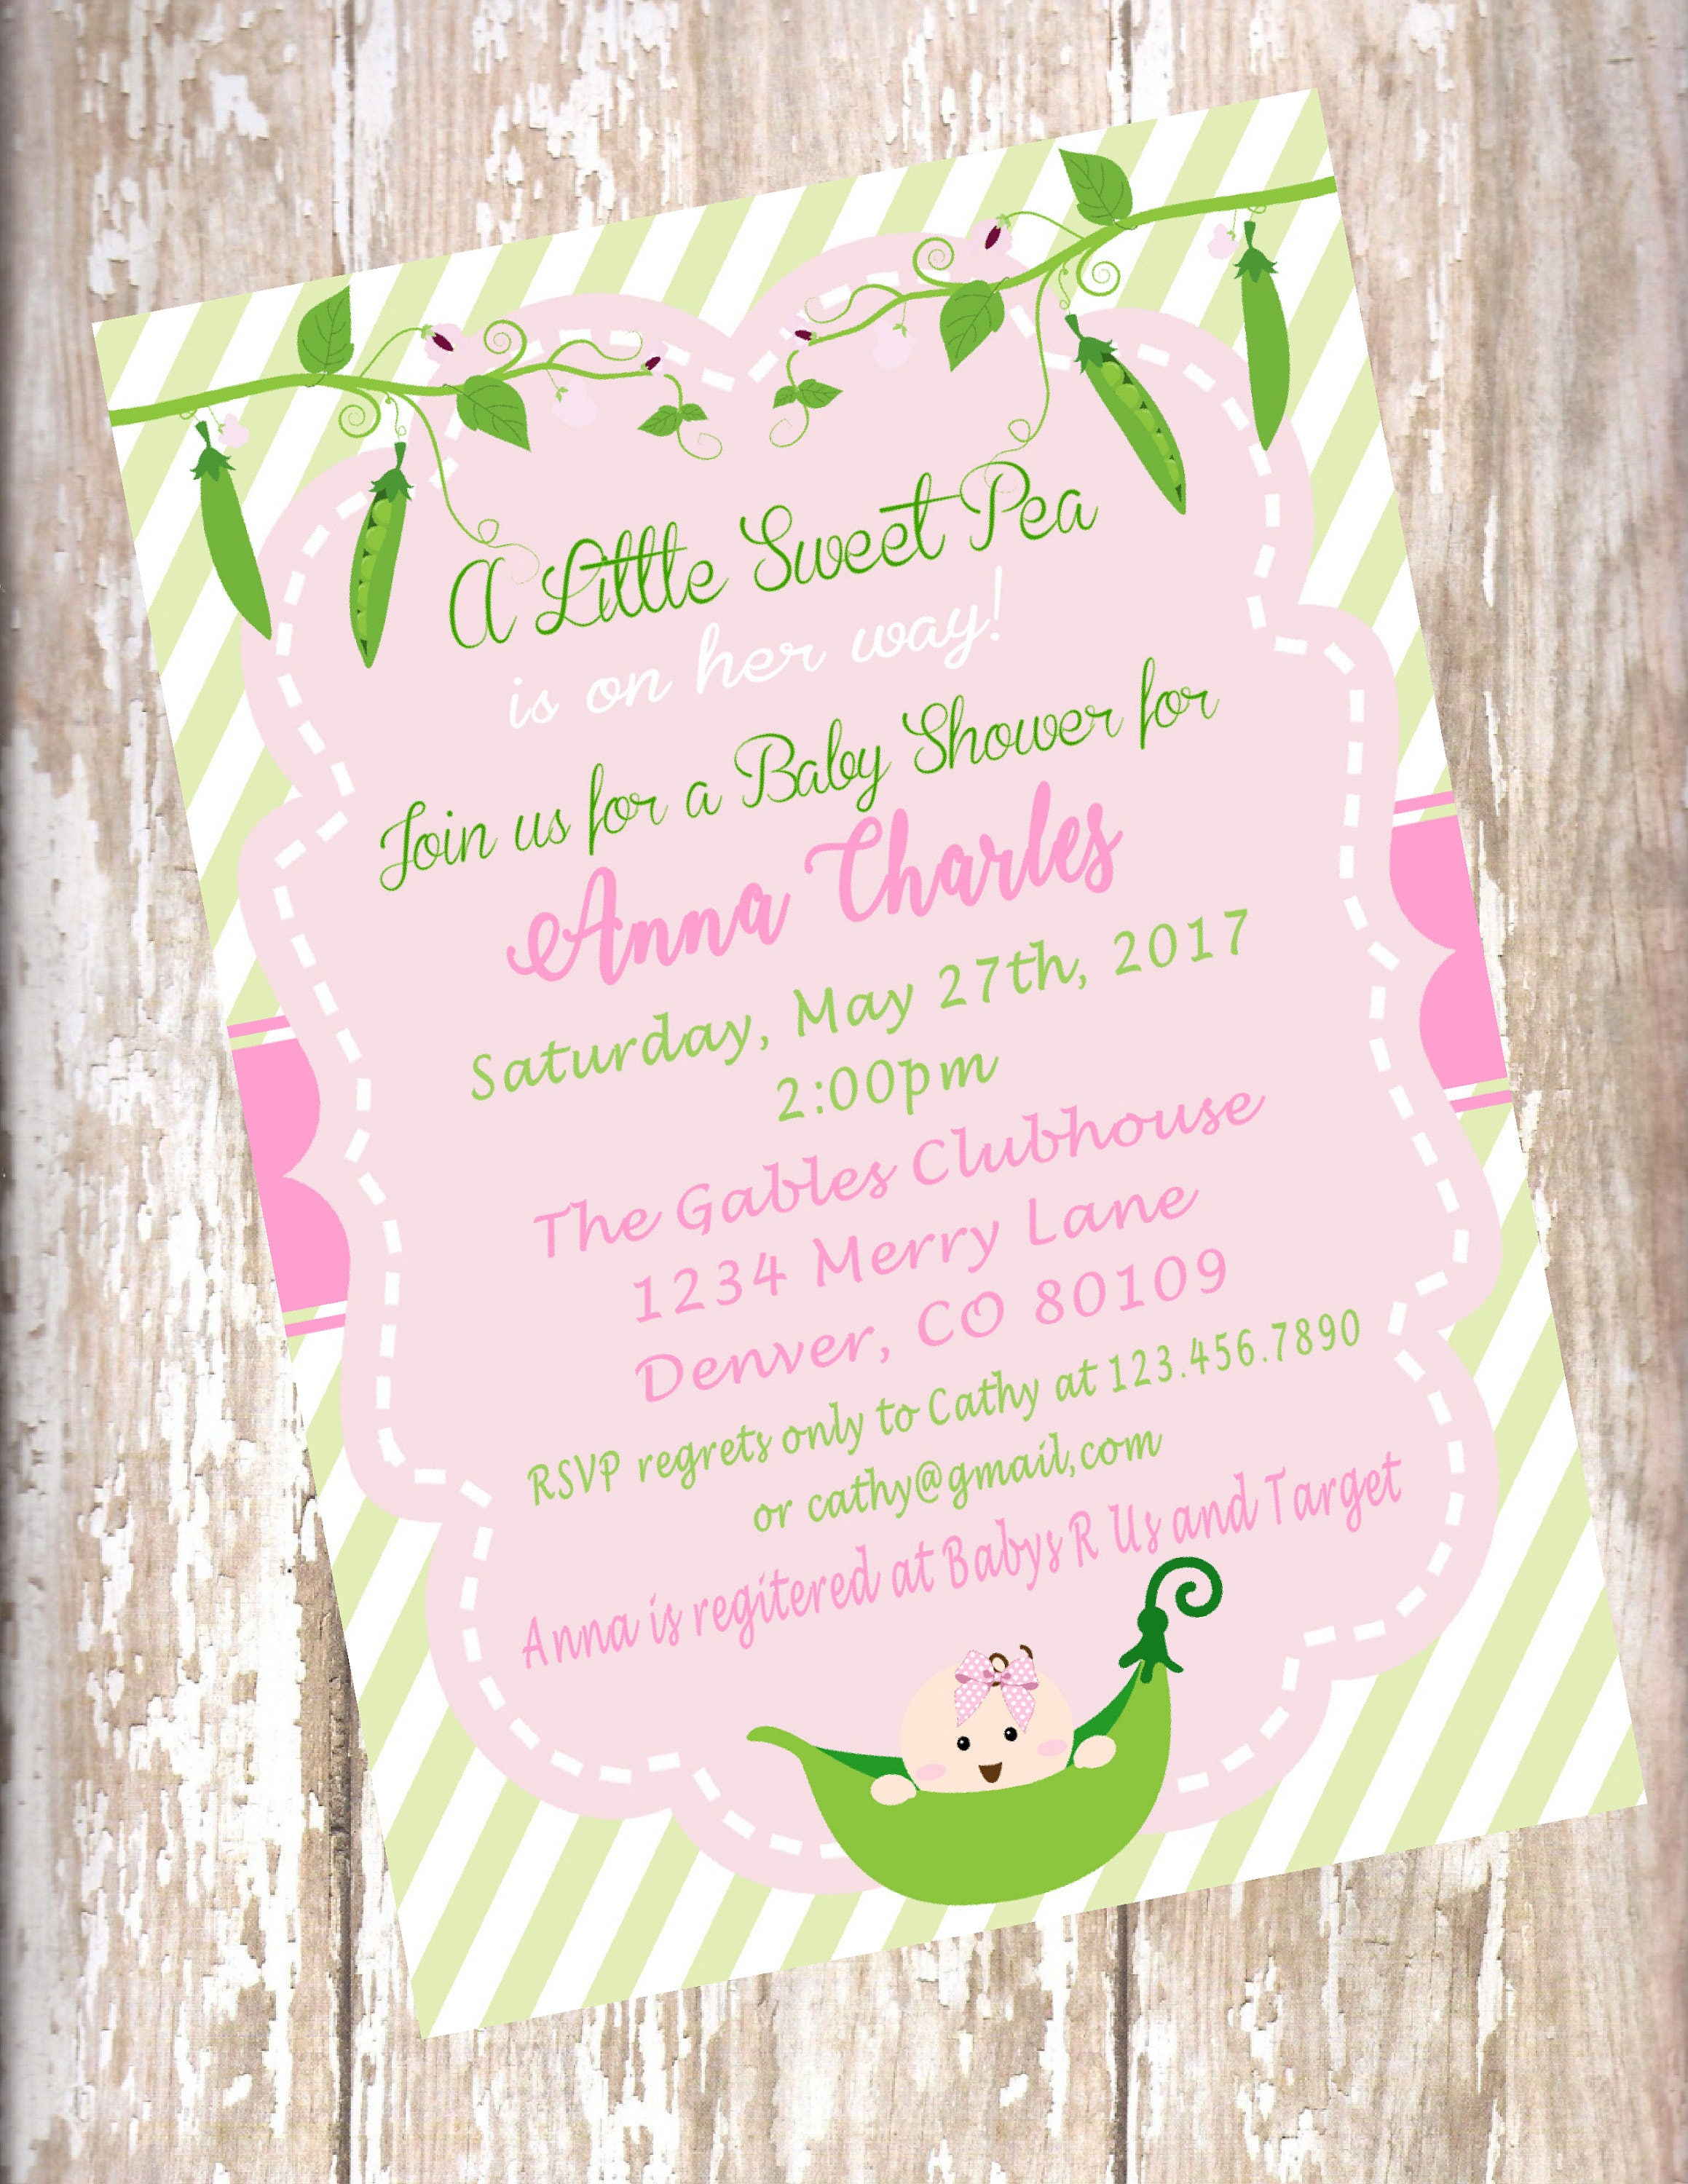 Sweet Pea baby shower pink and green shower invitation 15